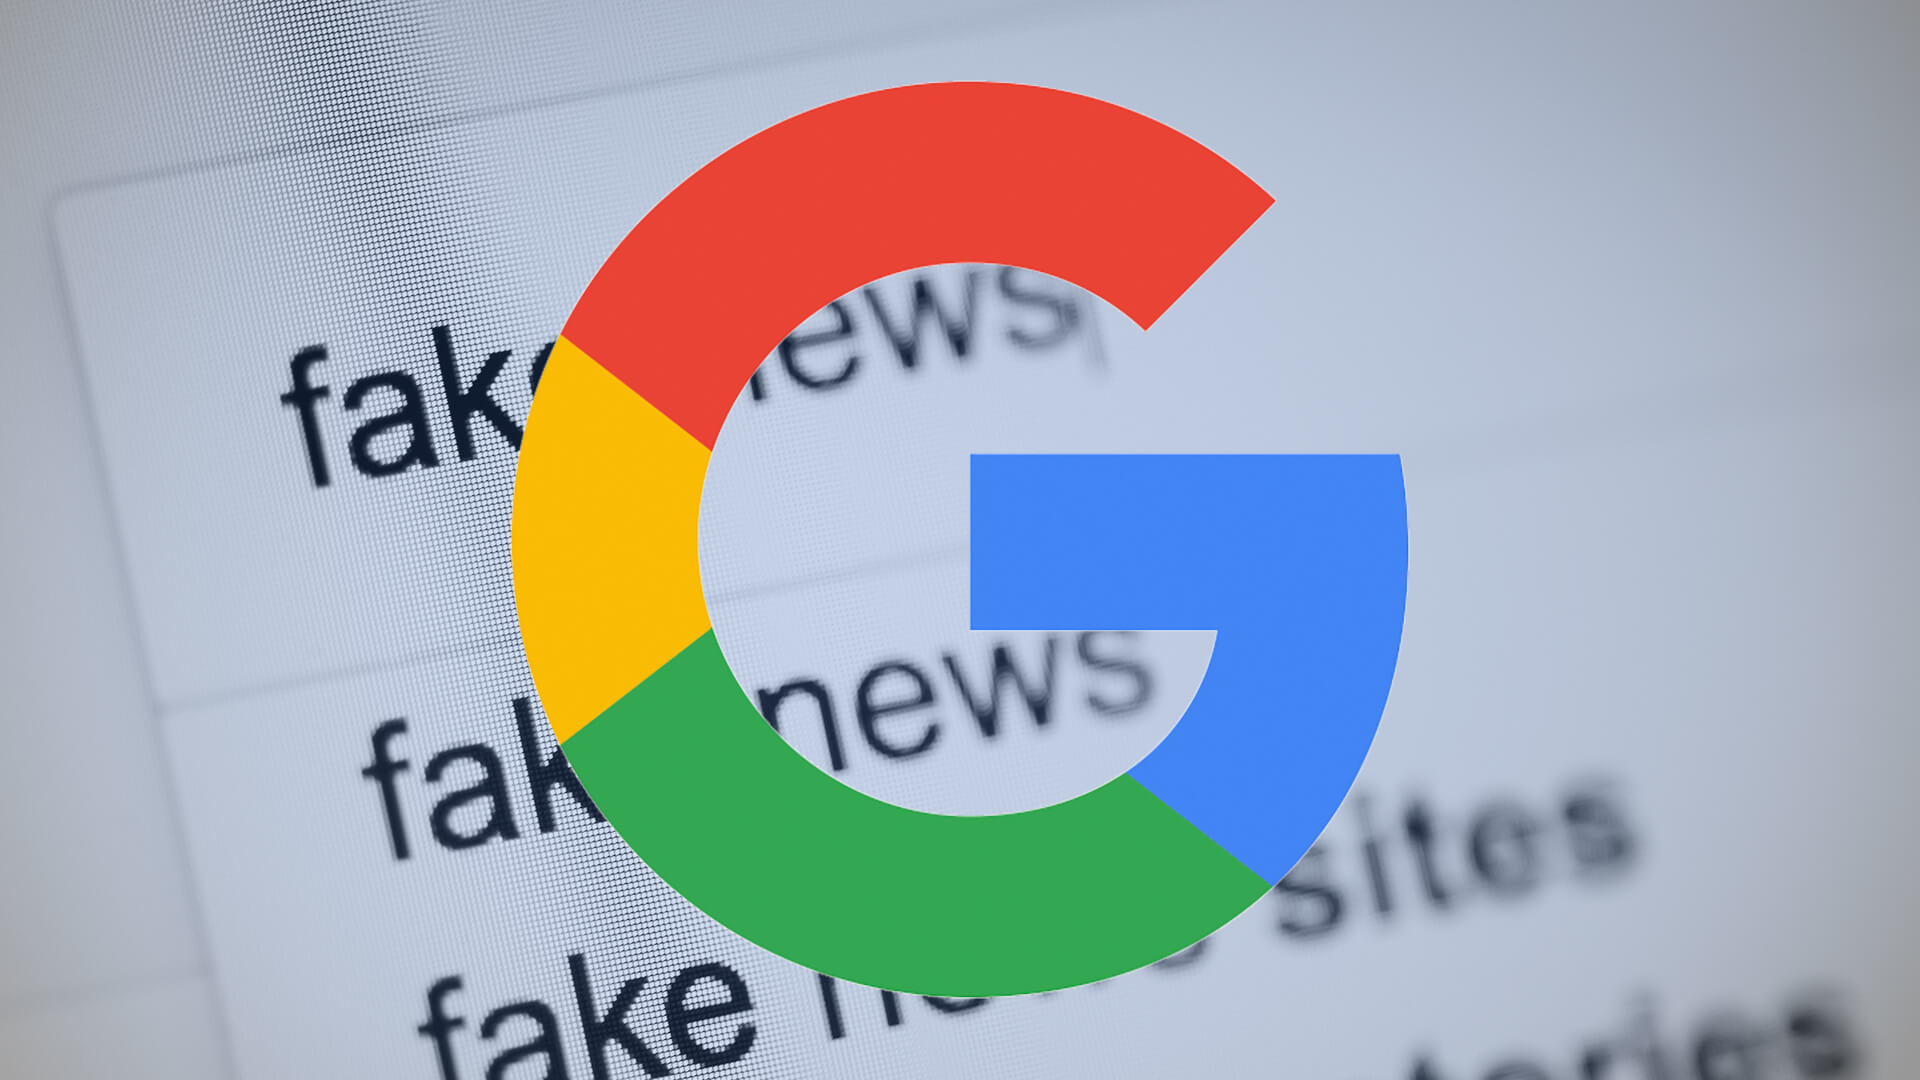 Meet the fake news of the online marketing world (that Google loves!): Review sites